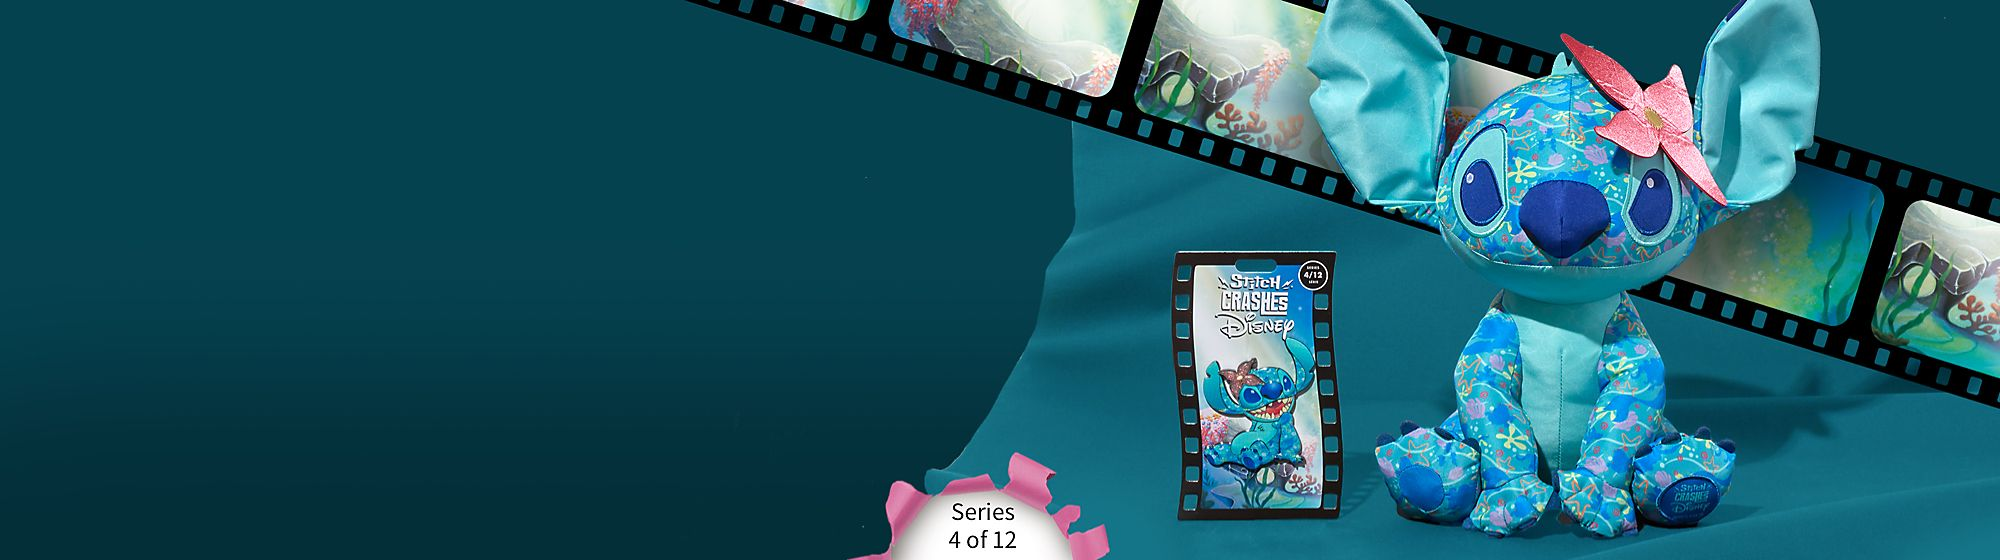 Stitch Crashes The Little Mermaid Collect limited edition Series 4 of 12 pin & soft toy Will release later this Spring